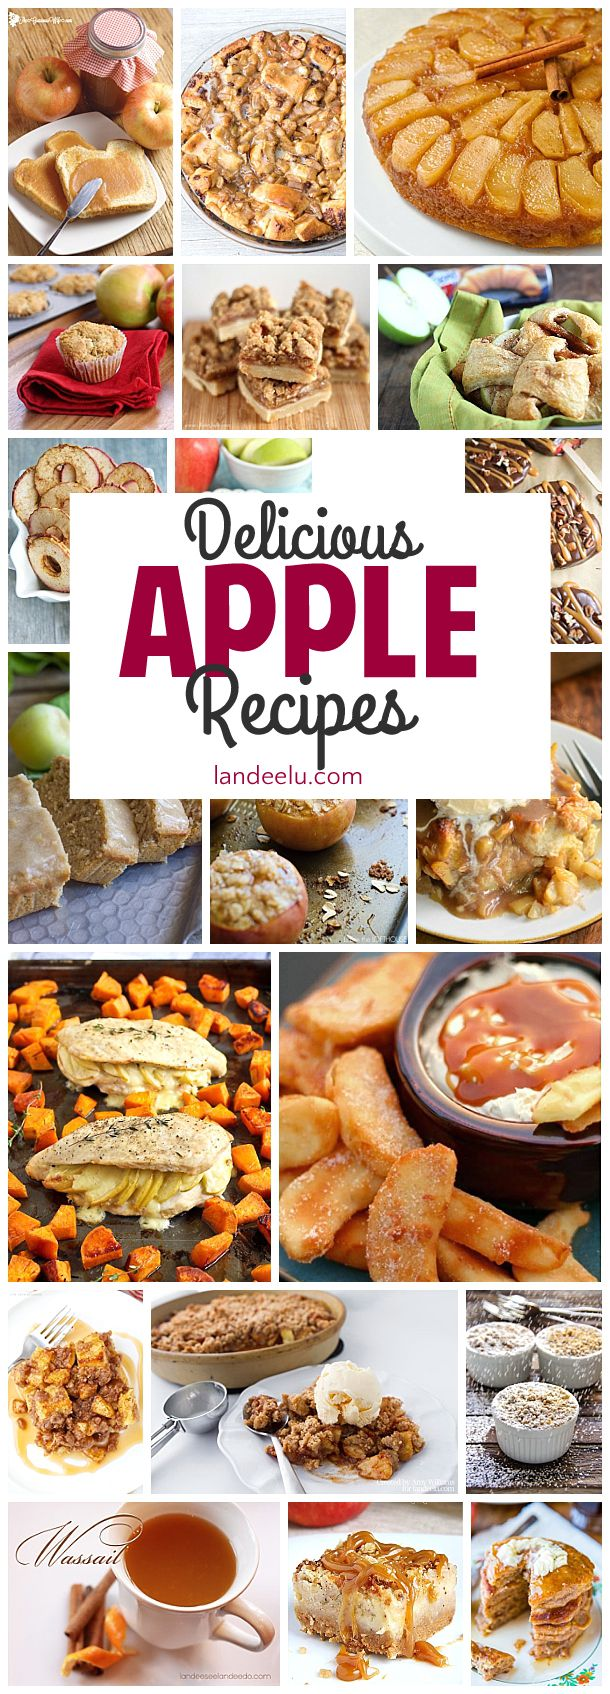 These apple recipes look soooo yummy!  I can't wait to try them!  Perfect for Fall, Winter or anytime in my book!